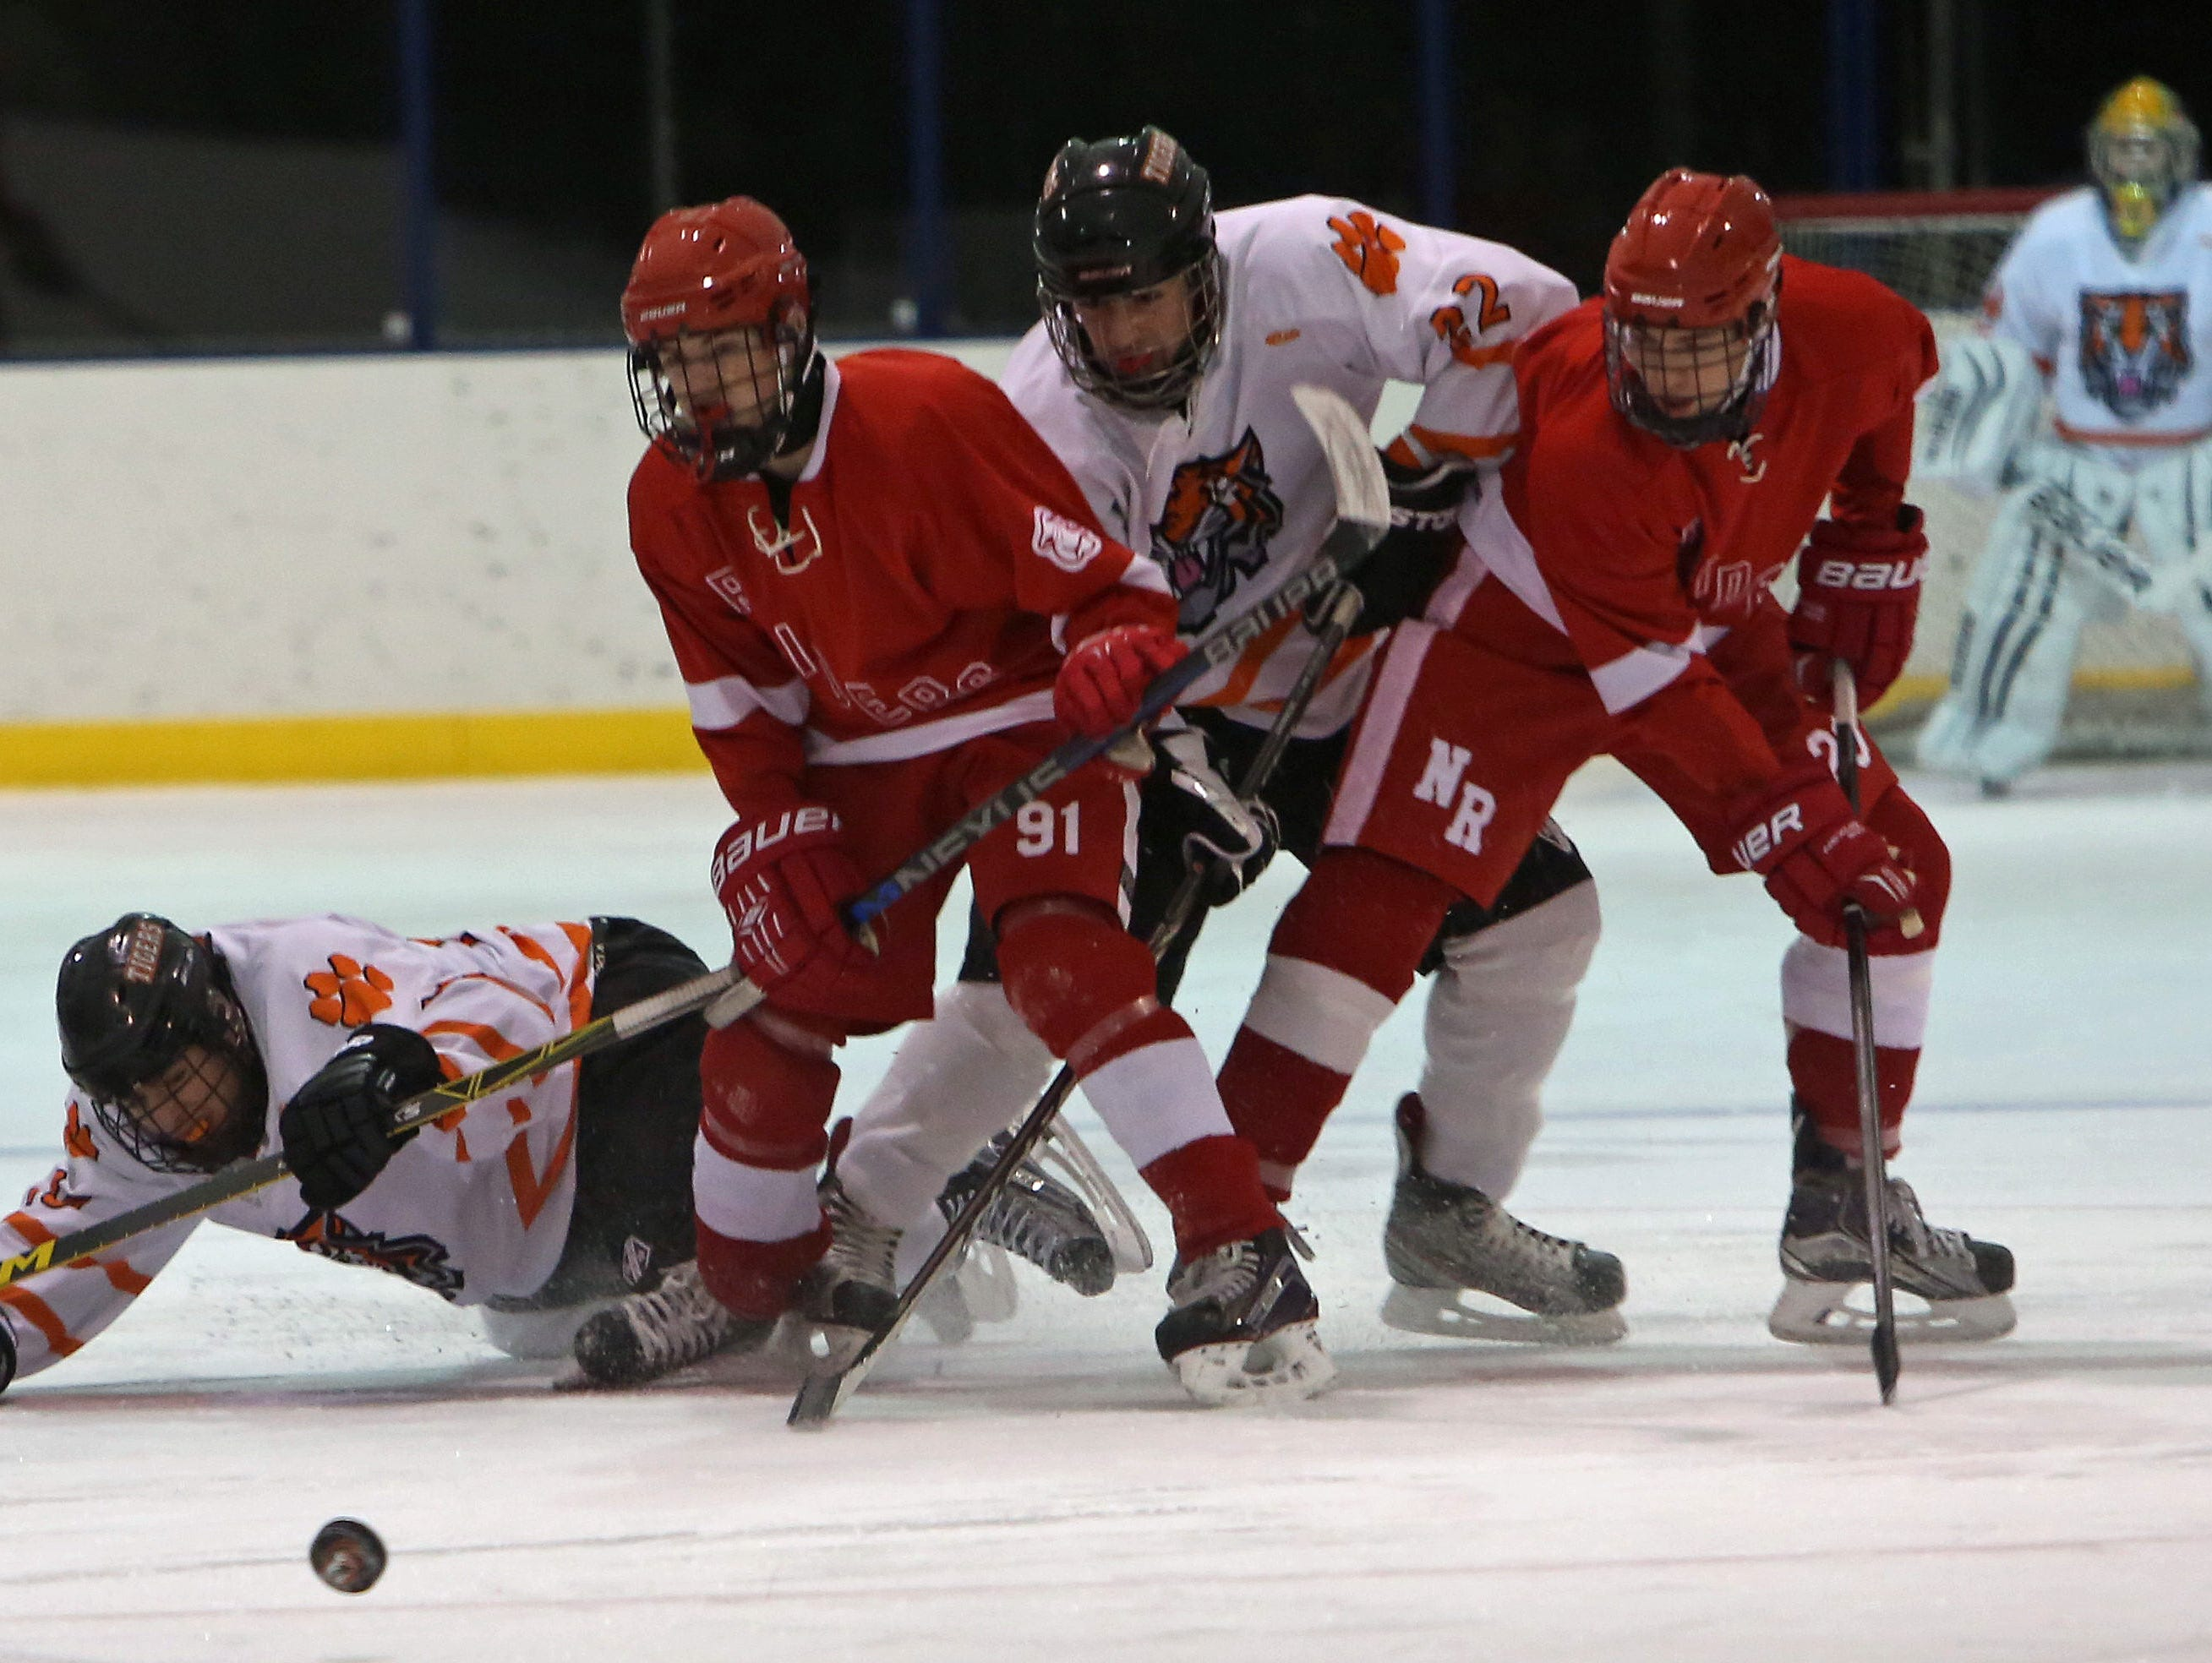 From left, White Plains' Harry Seymour (14) and Chris Schiavone (22) battle for the puck with North Rockland's Christopher Hilliard (91) during hockey action at Ebersole Ice Rink in White Plains Jan. 7, 2016. The game ended in a 4-4 tie.